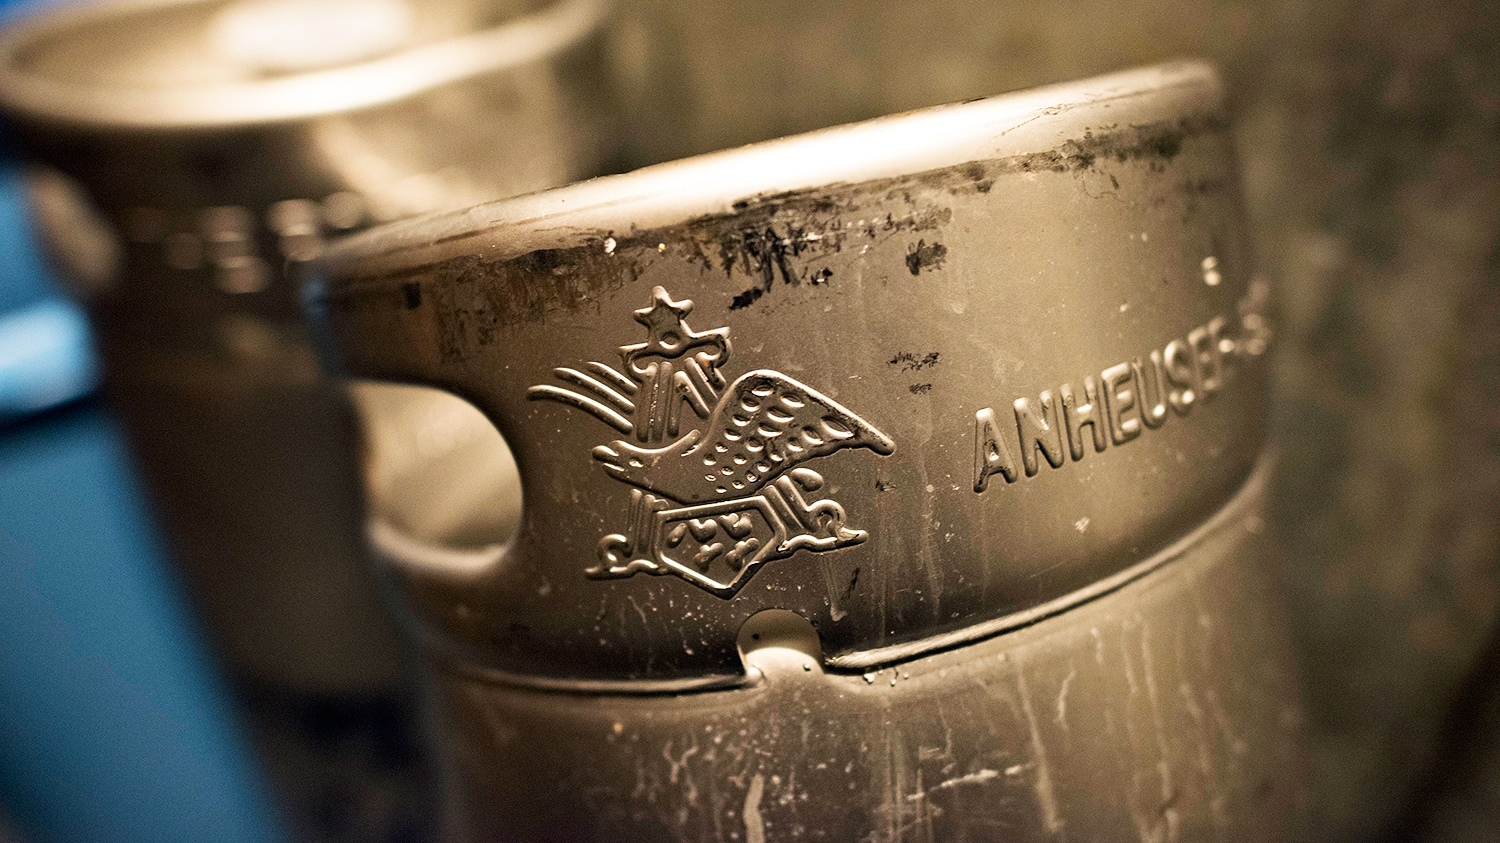 Anheuser-Busch Is Trying to Make Its Beers Taste Fresher